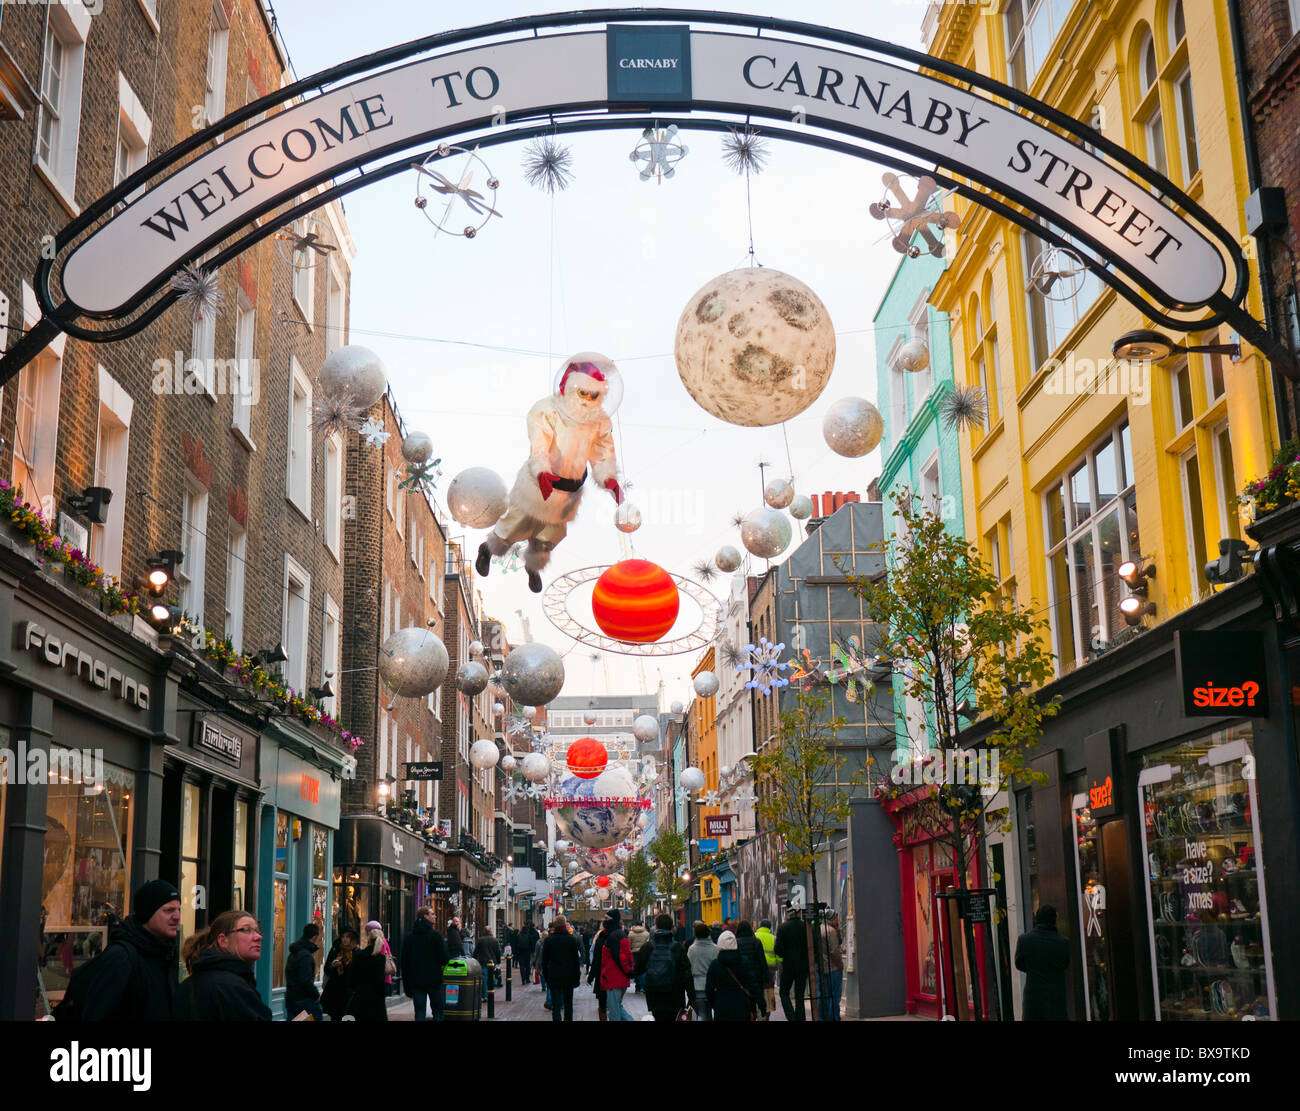 Christmas decorations and lights in Carnaby Street in London's West End in Britain - Stock Image